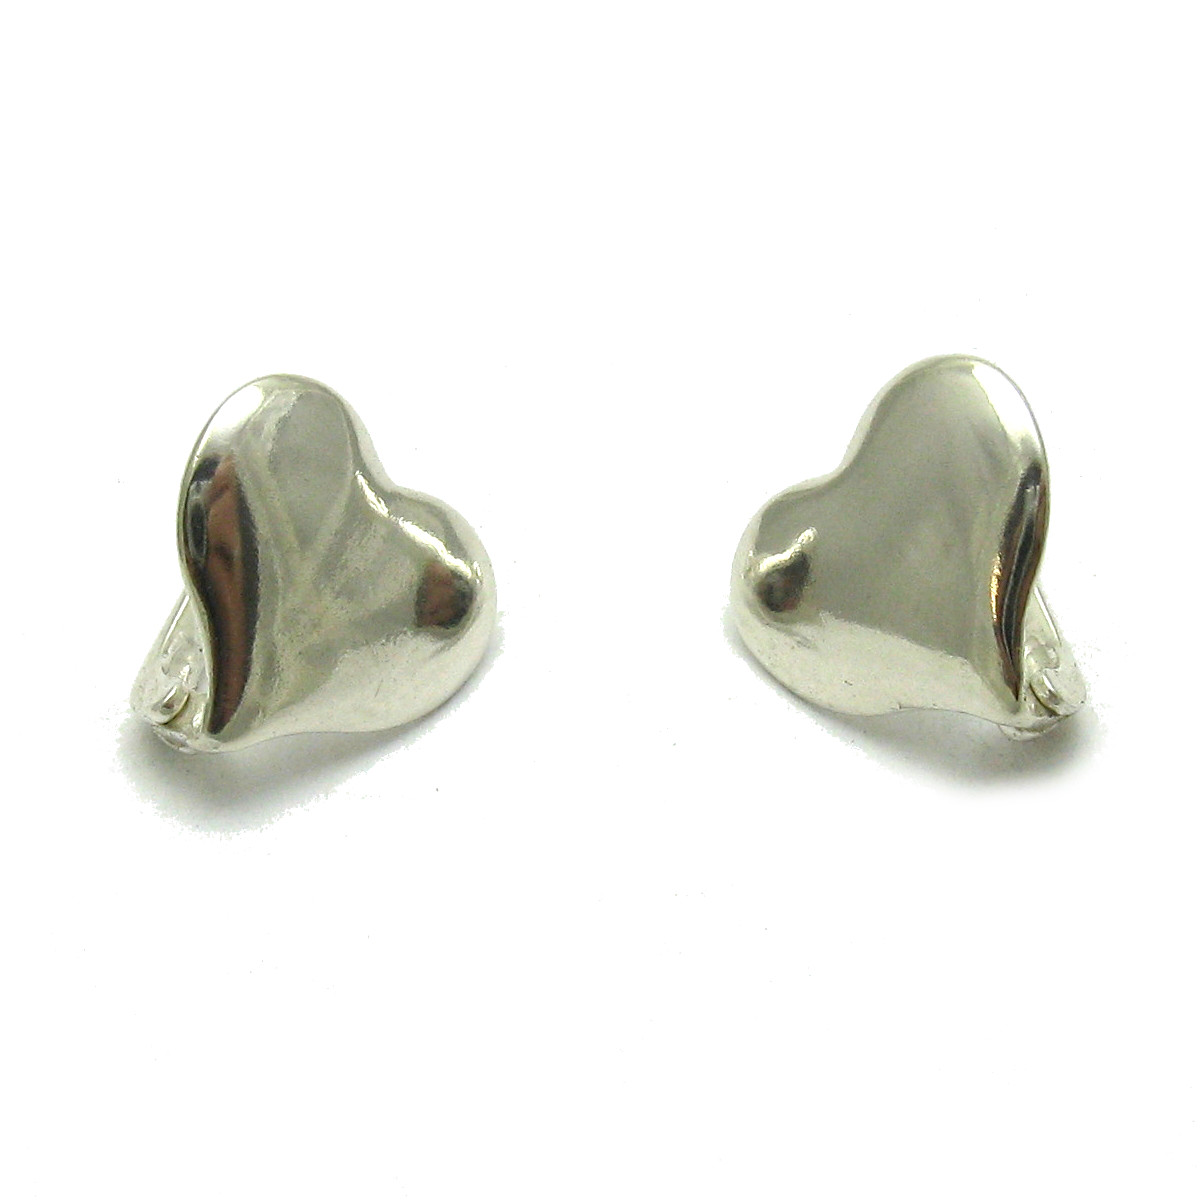 Silver earrings - E000605